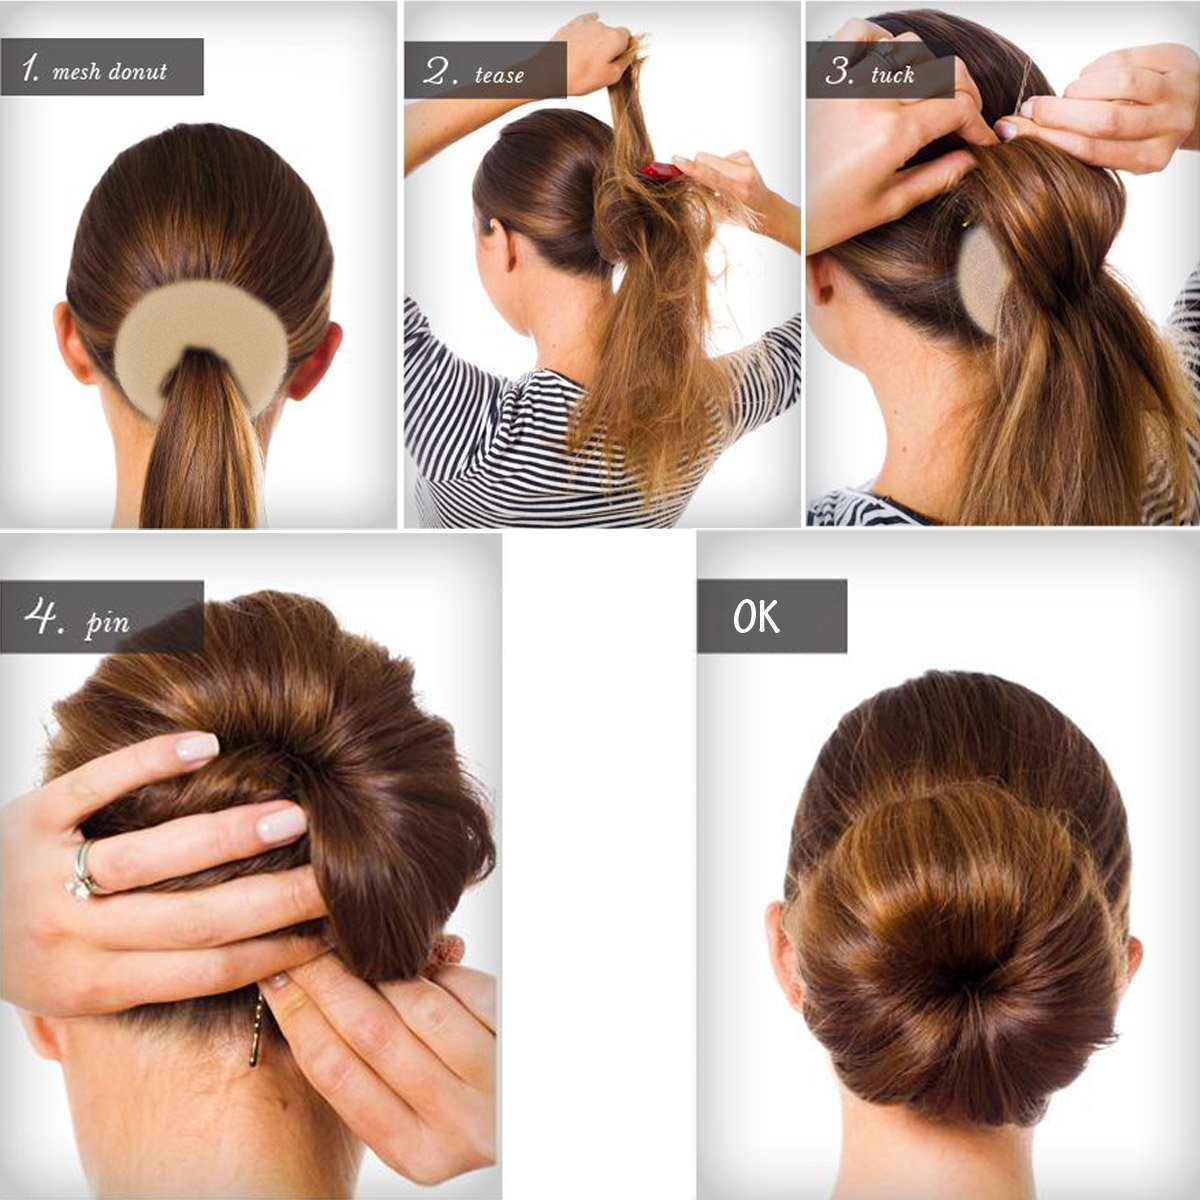 QY 3PCS Hair Mesh Chignon Donut To Make Hair Bun Best Age Reducing Solution, Small Medium And Large Size, Light Beige Color Qualtiy Yes